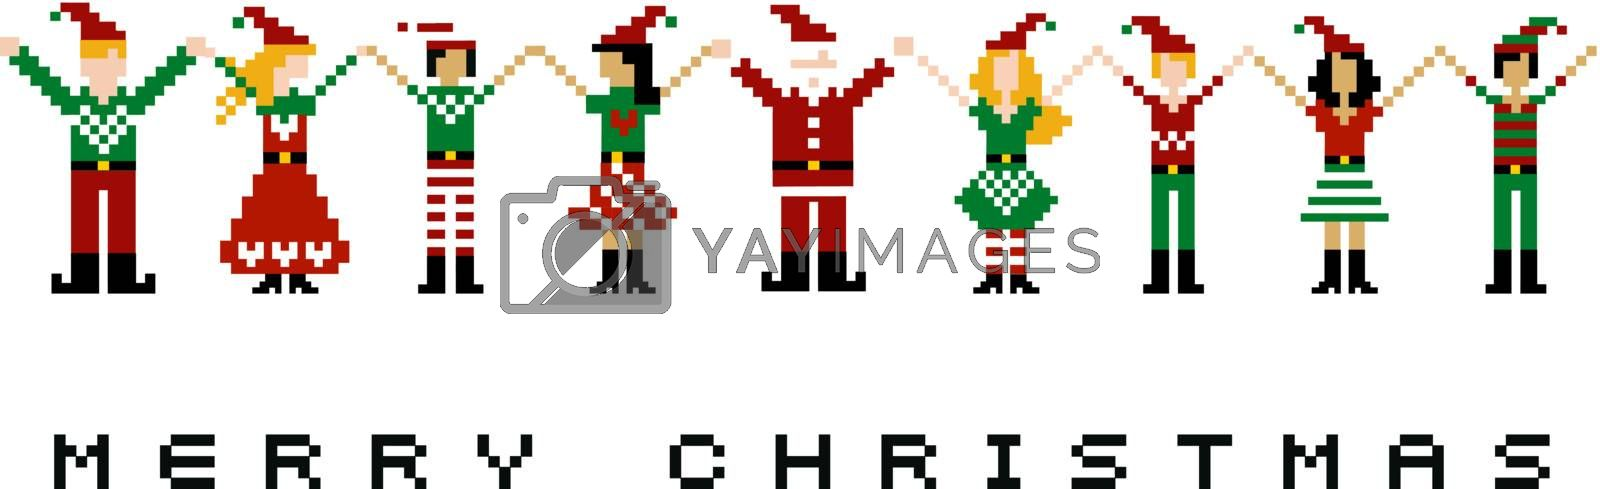 A group of pixeled xmas characters celebrating Christmas.